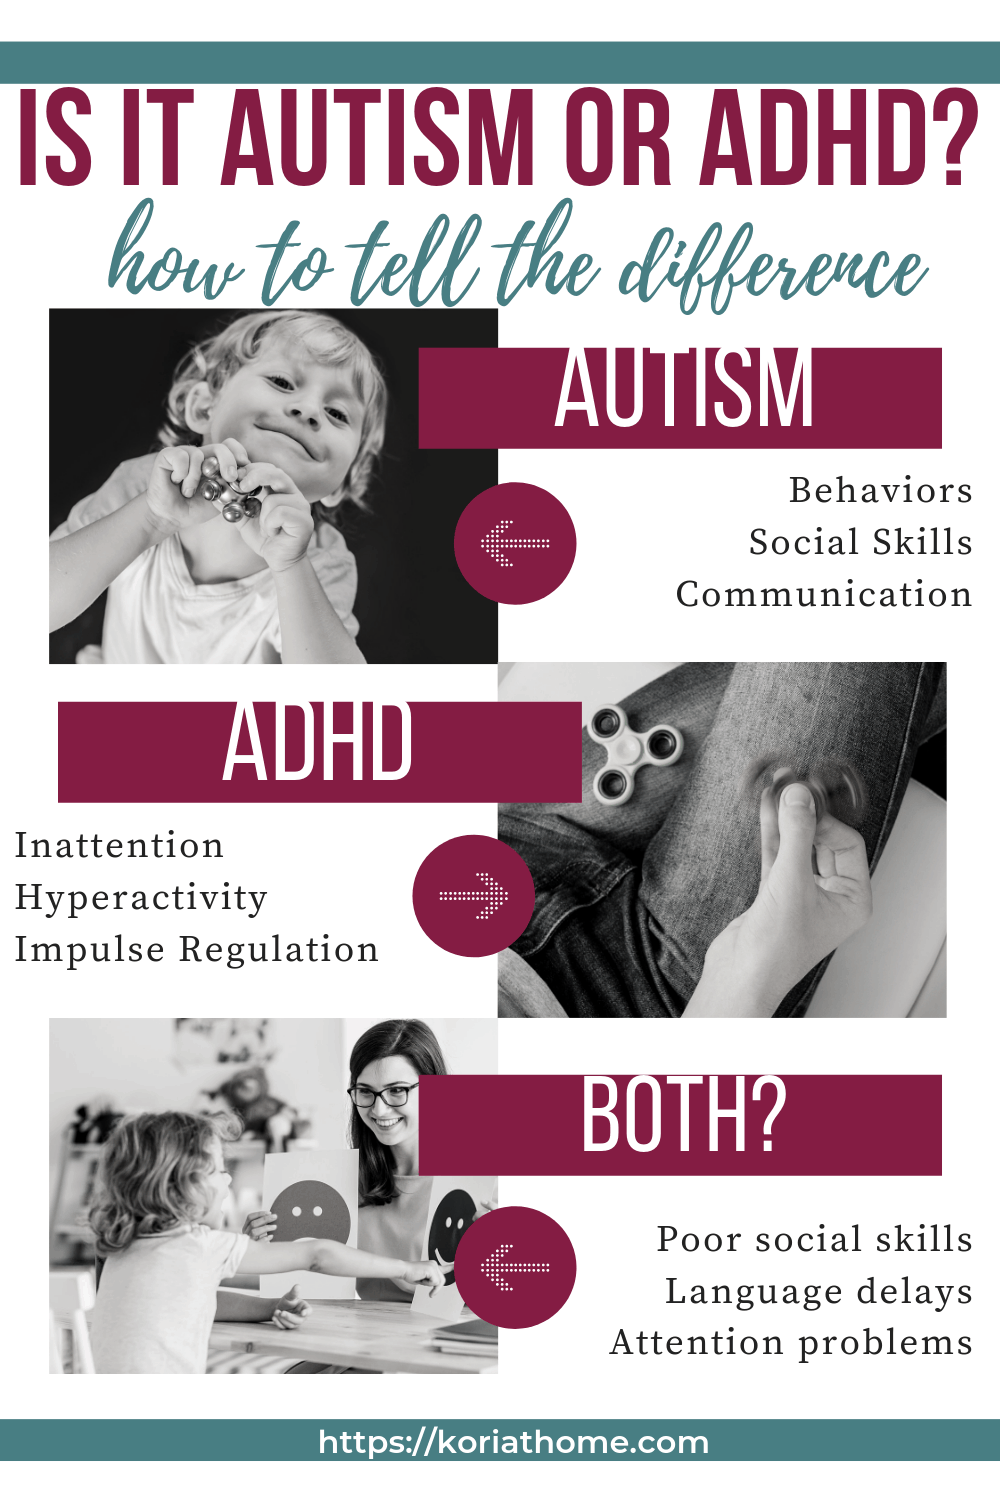 How do I know if it's signs of autism or ADHD? Is there a difference? 1